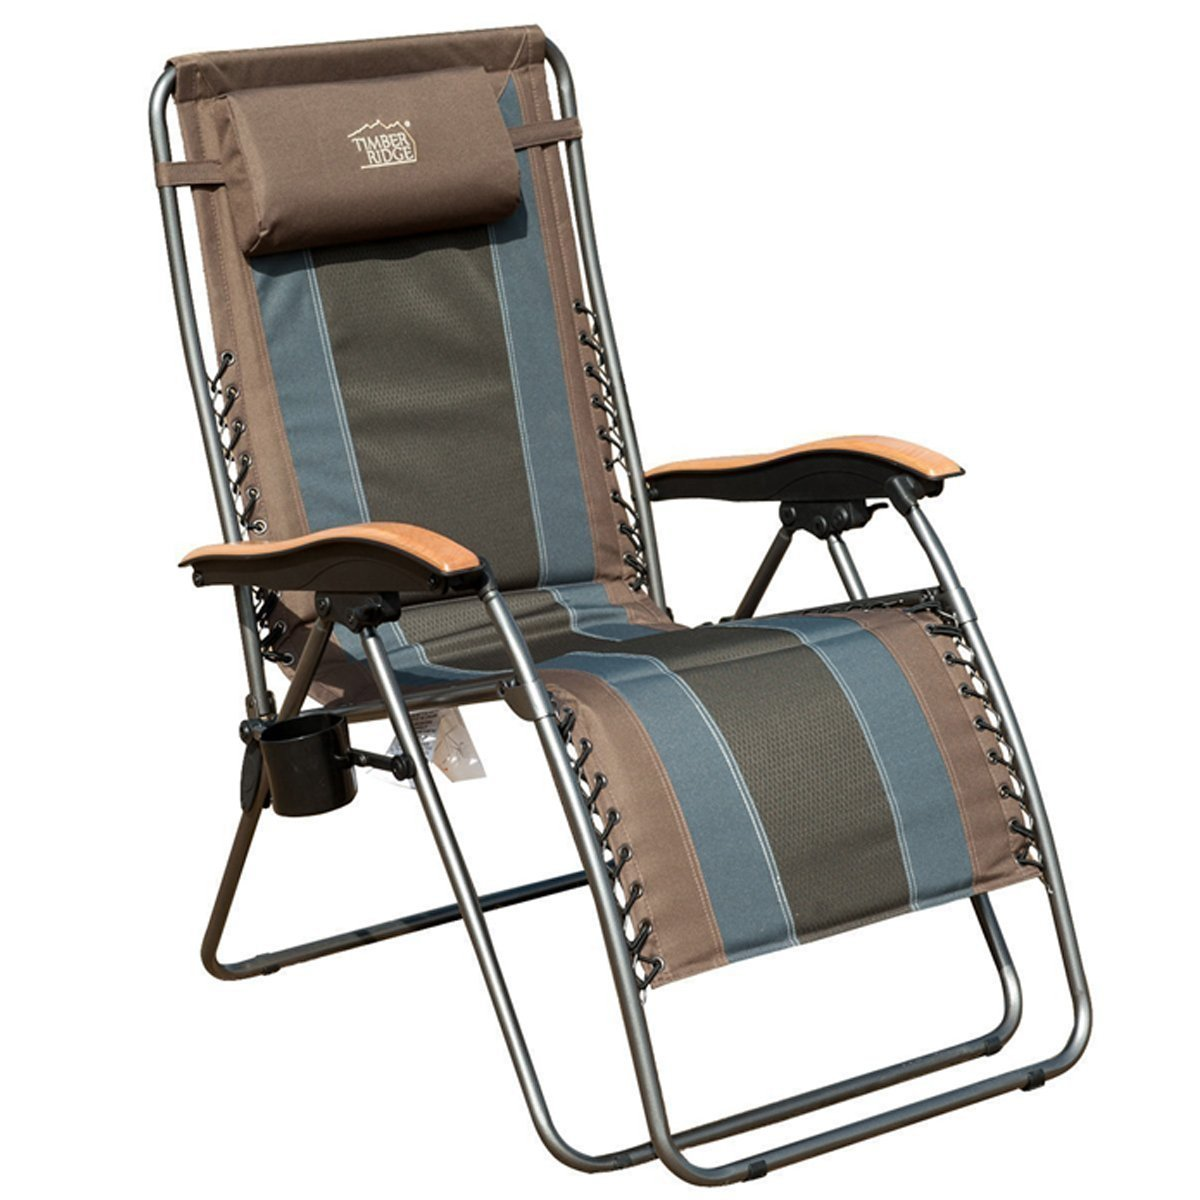 Review of Timber Ridge Zero Gravity Patio Lounge Chair Oversize XL Padded Adjustable Recliner